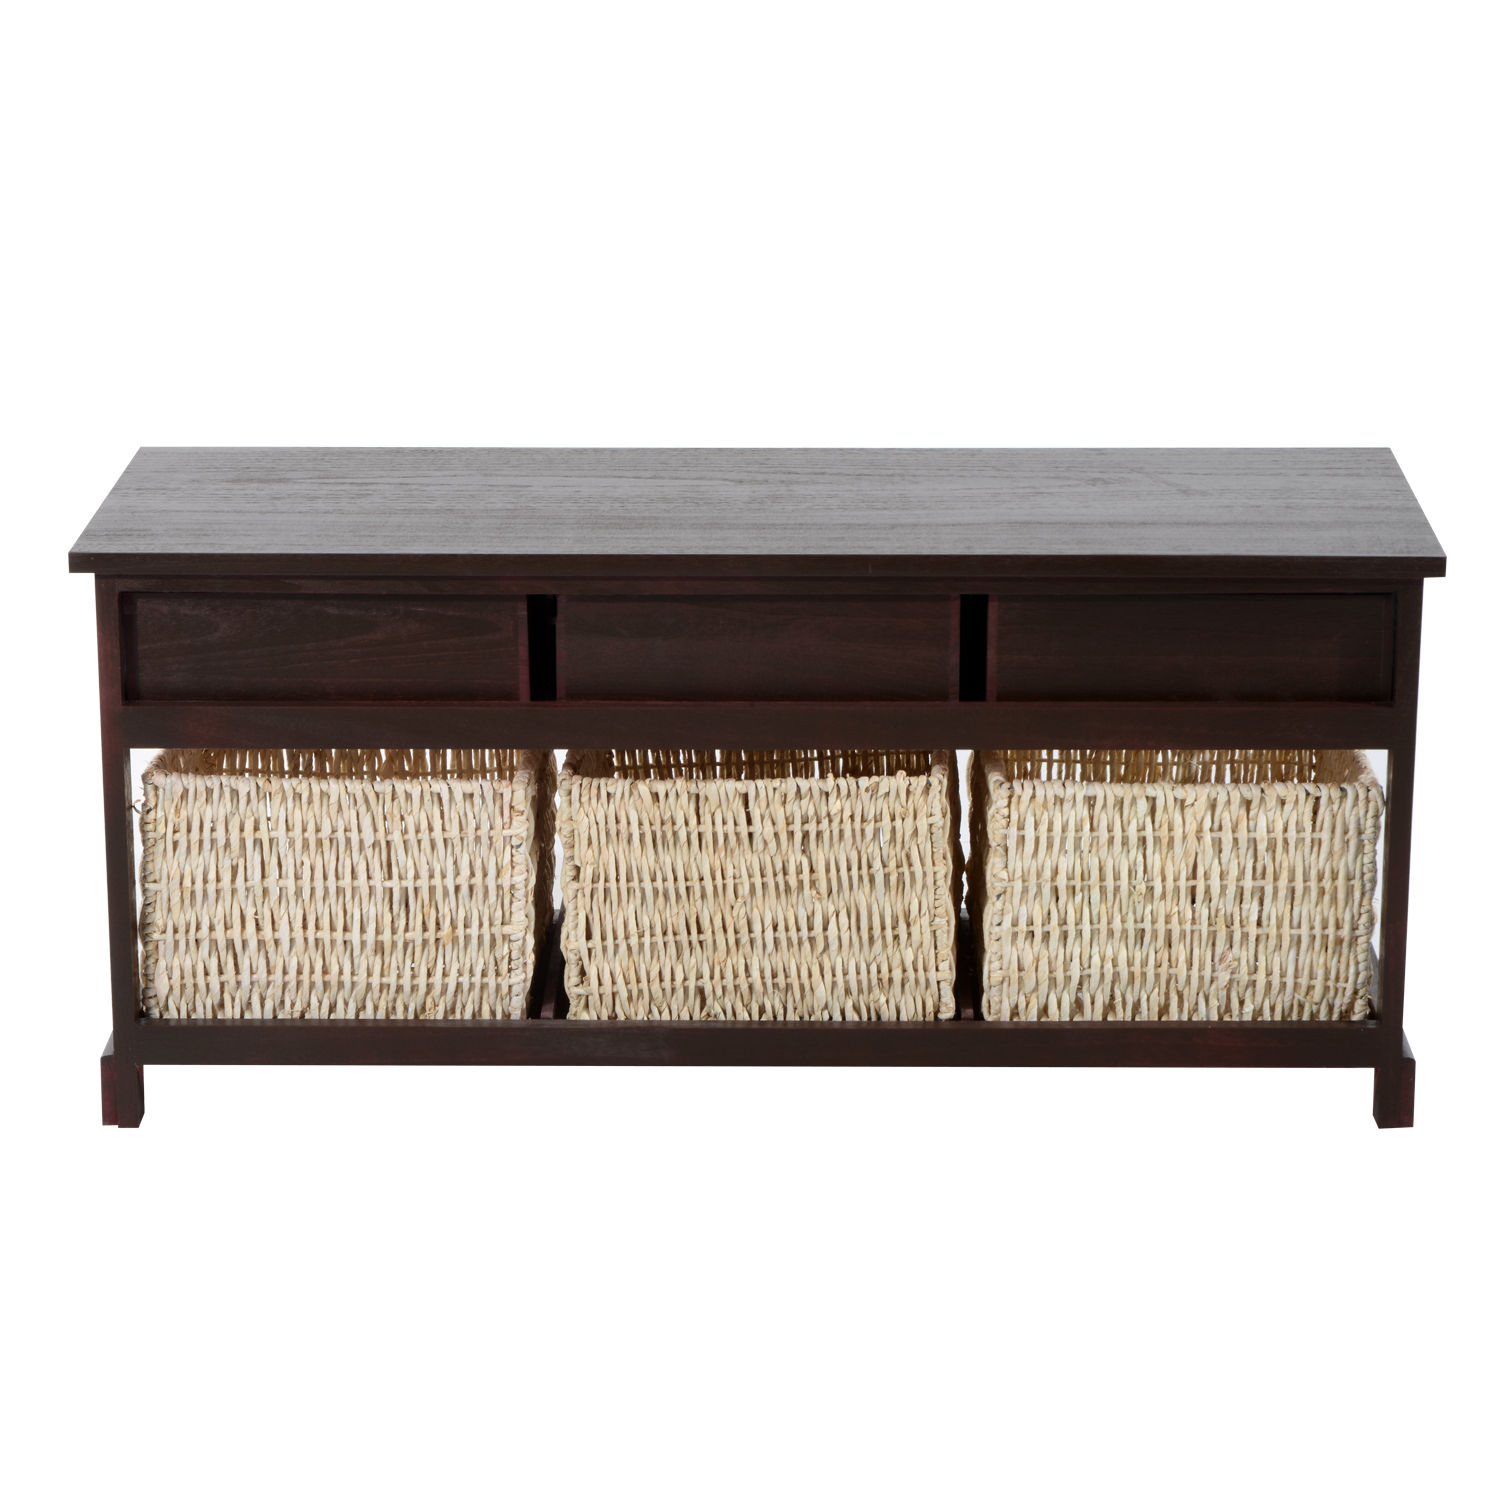 Storage Table Living Room Modern Design Seagrass Wicker Home 3 ...